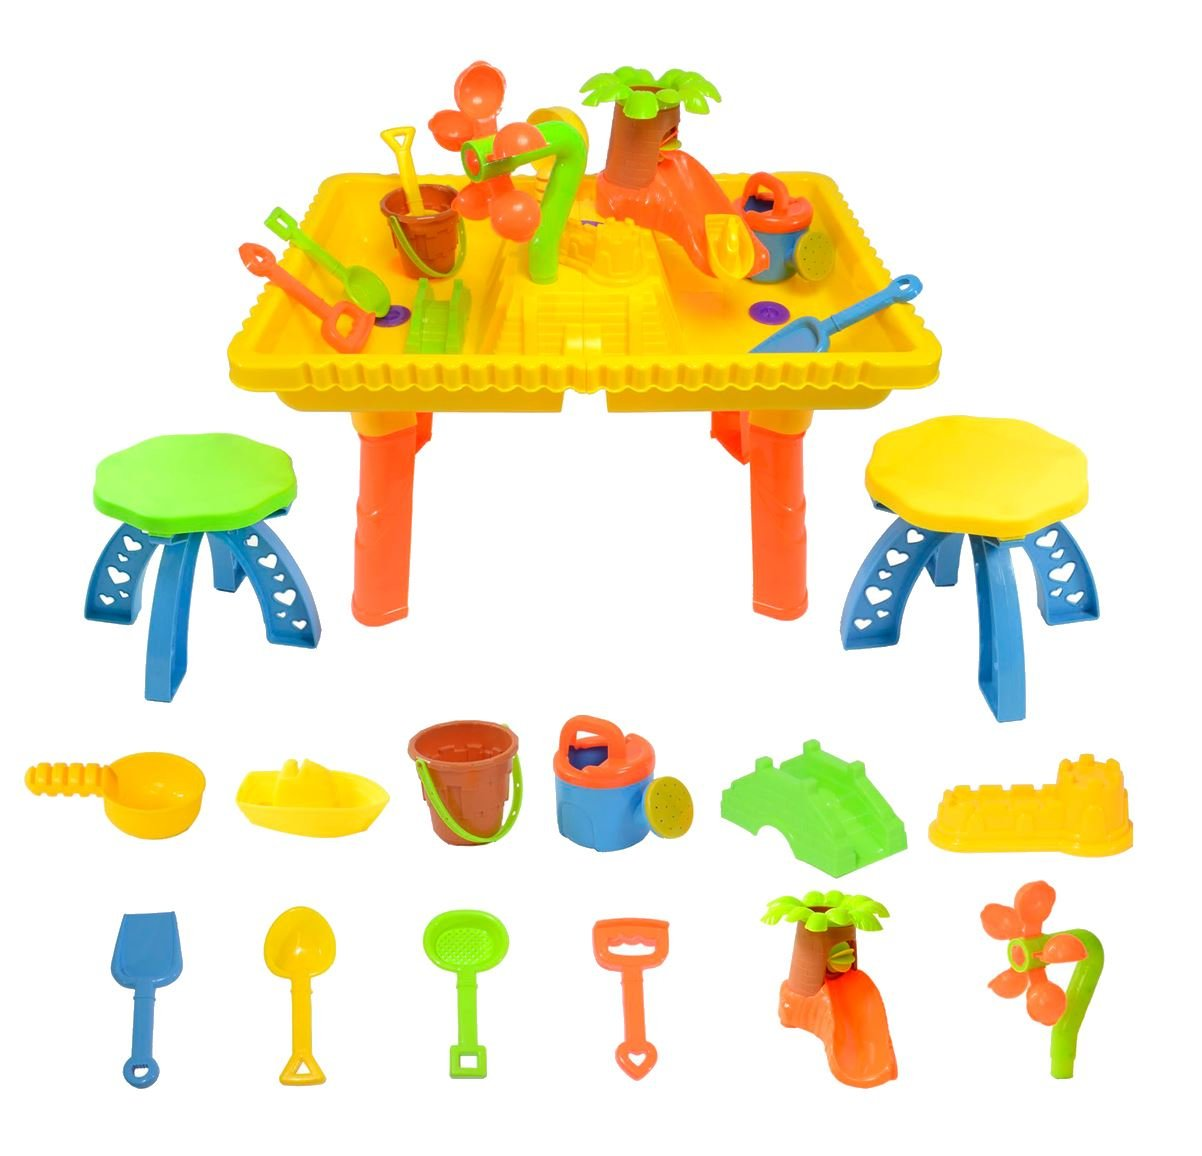 boppi Castle Childrens Sand and Water Table with 12 Play Accessories & 2 Stools